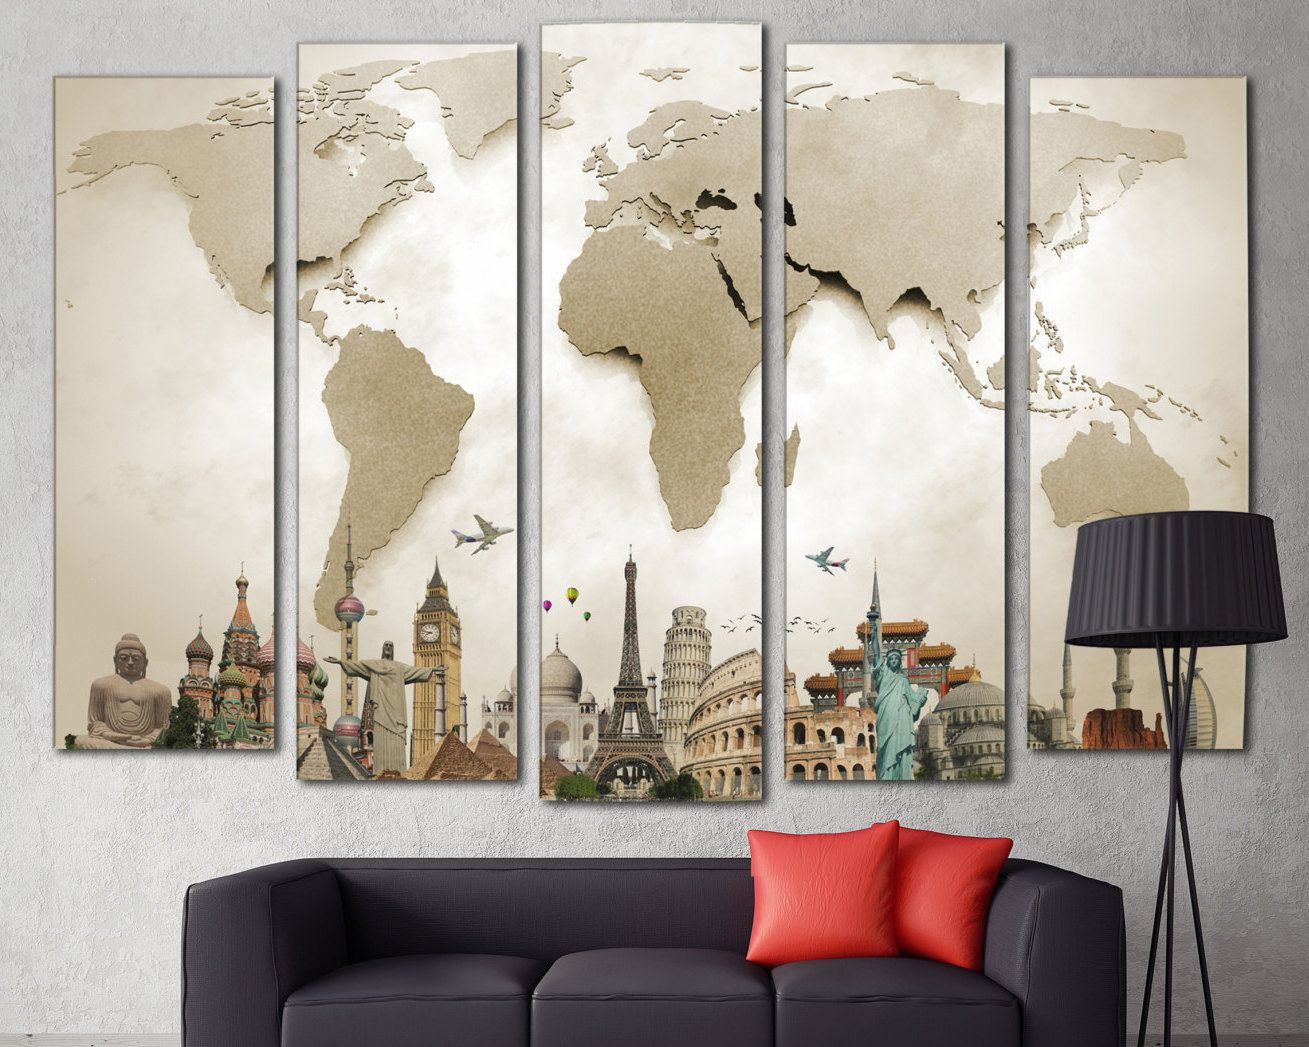 About this product world map print world map canvas world about this product world map print world map canvas world map wall art we use museum quality canvases to achieve archival grade wall art for your sciox Images